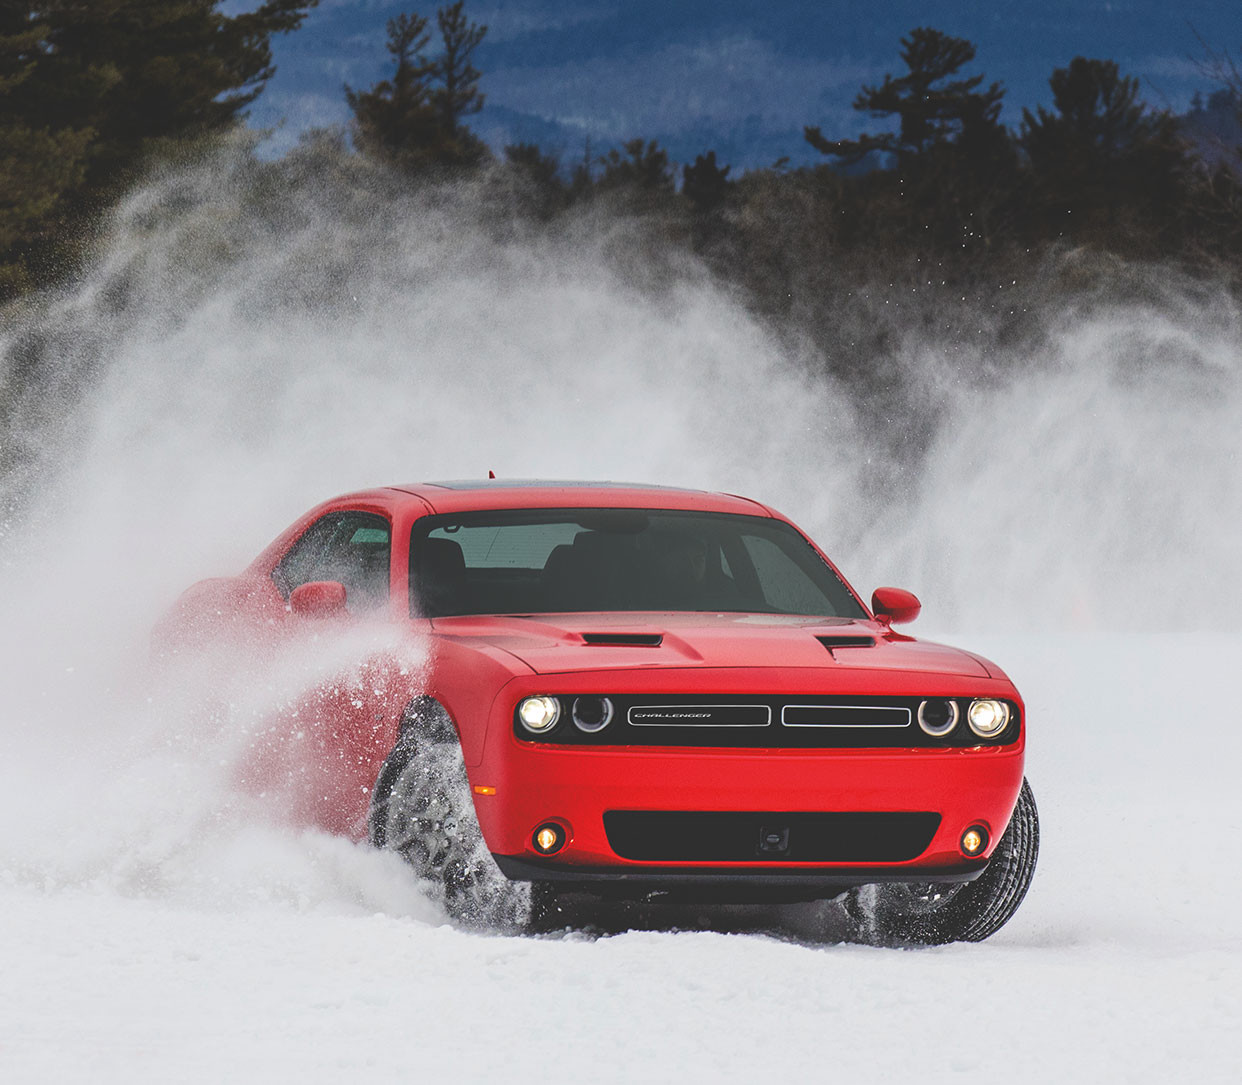 2019 dodge challenger owners manual download